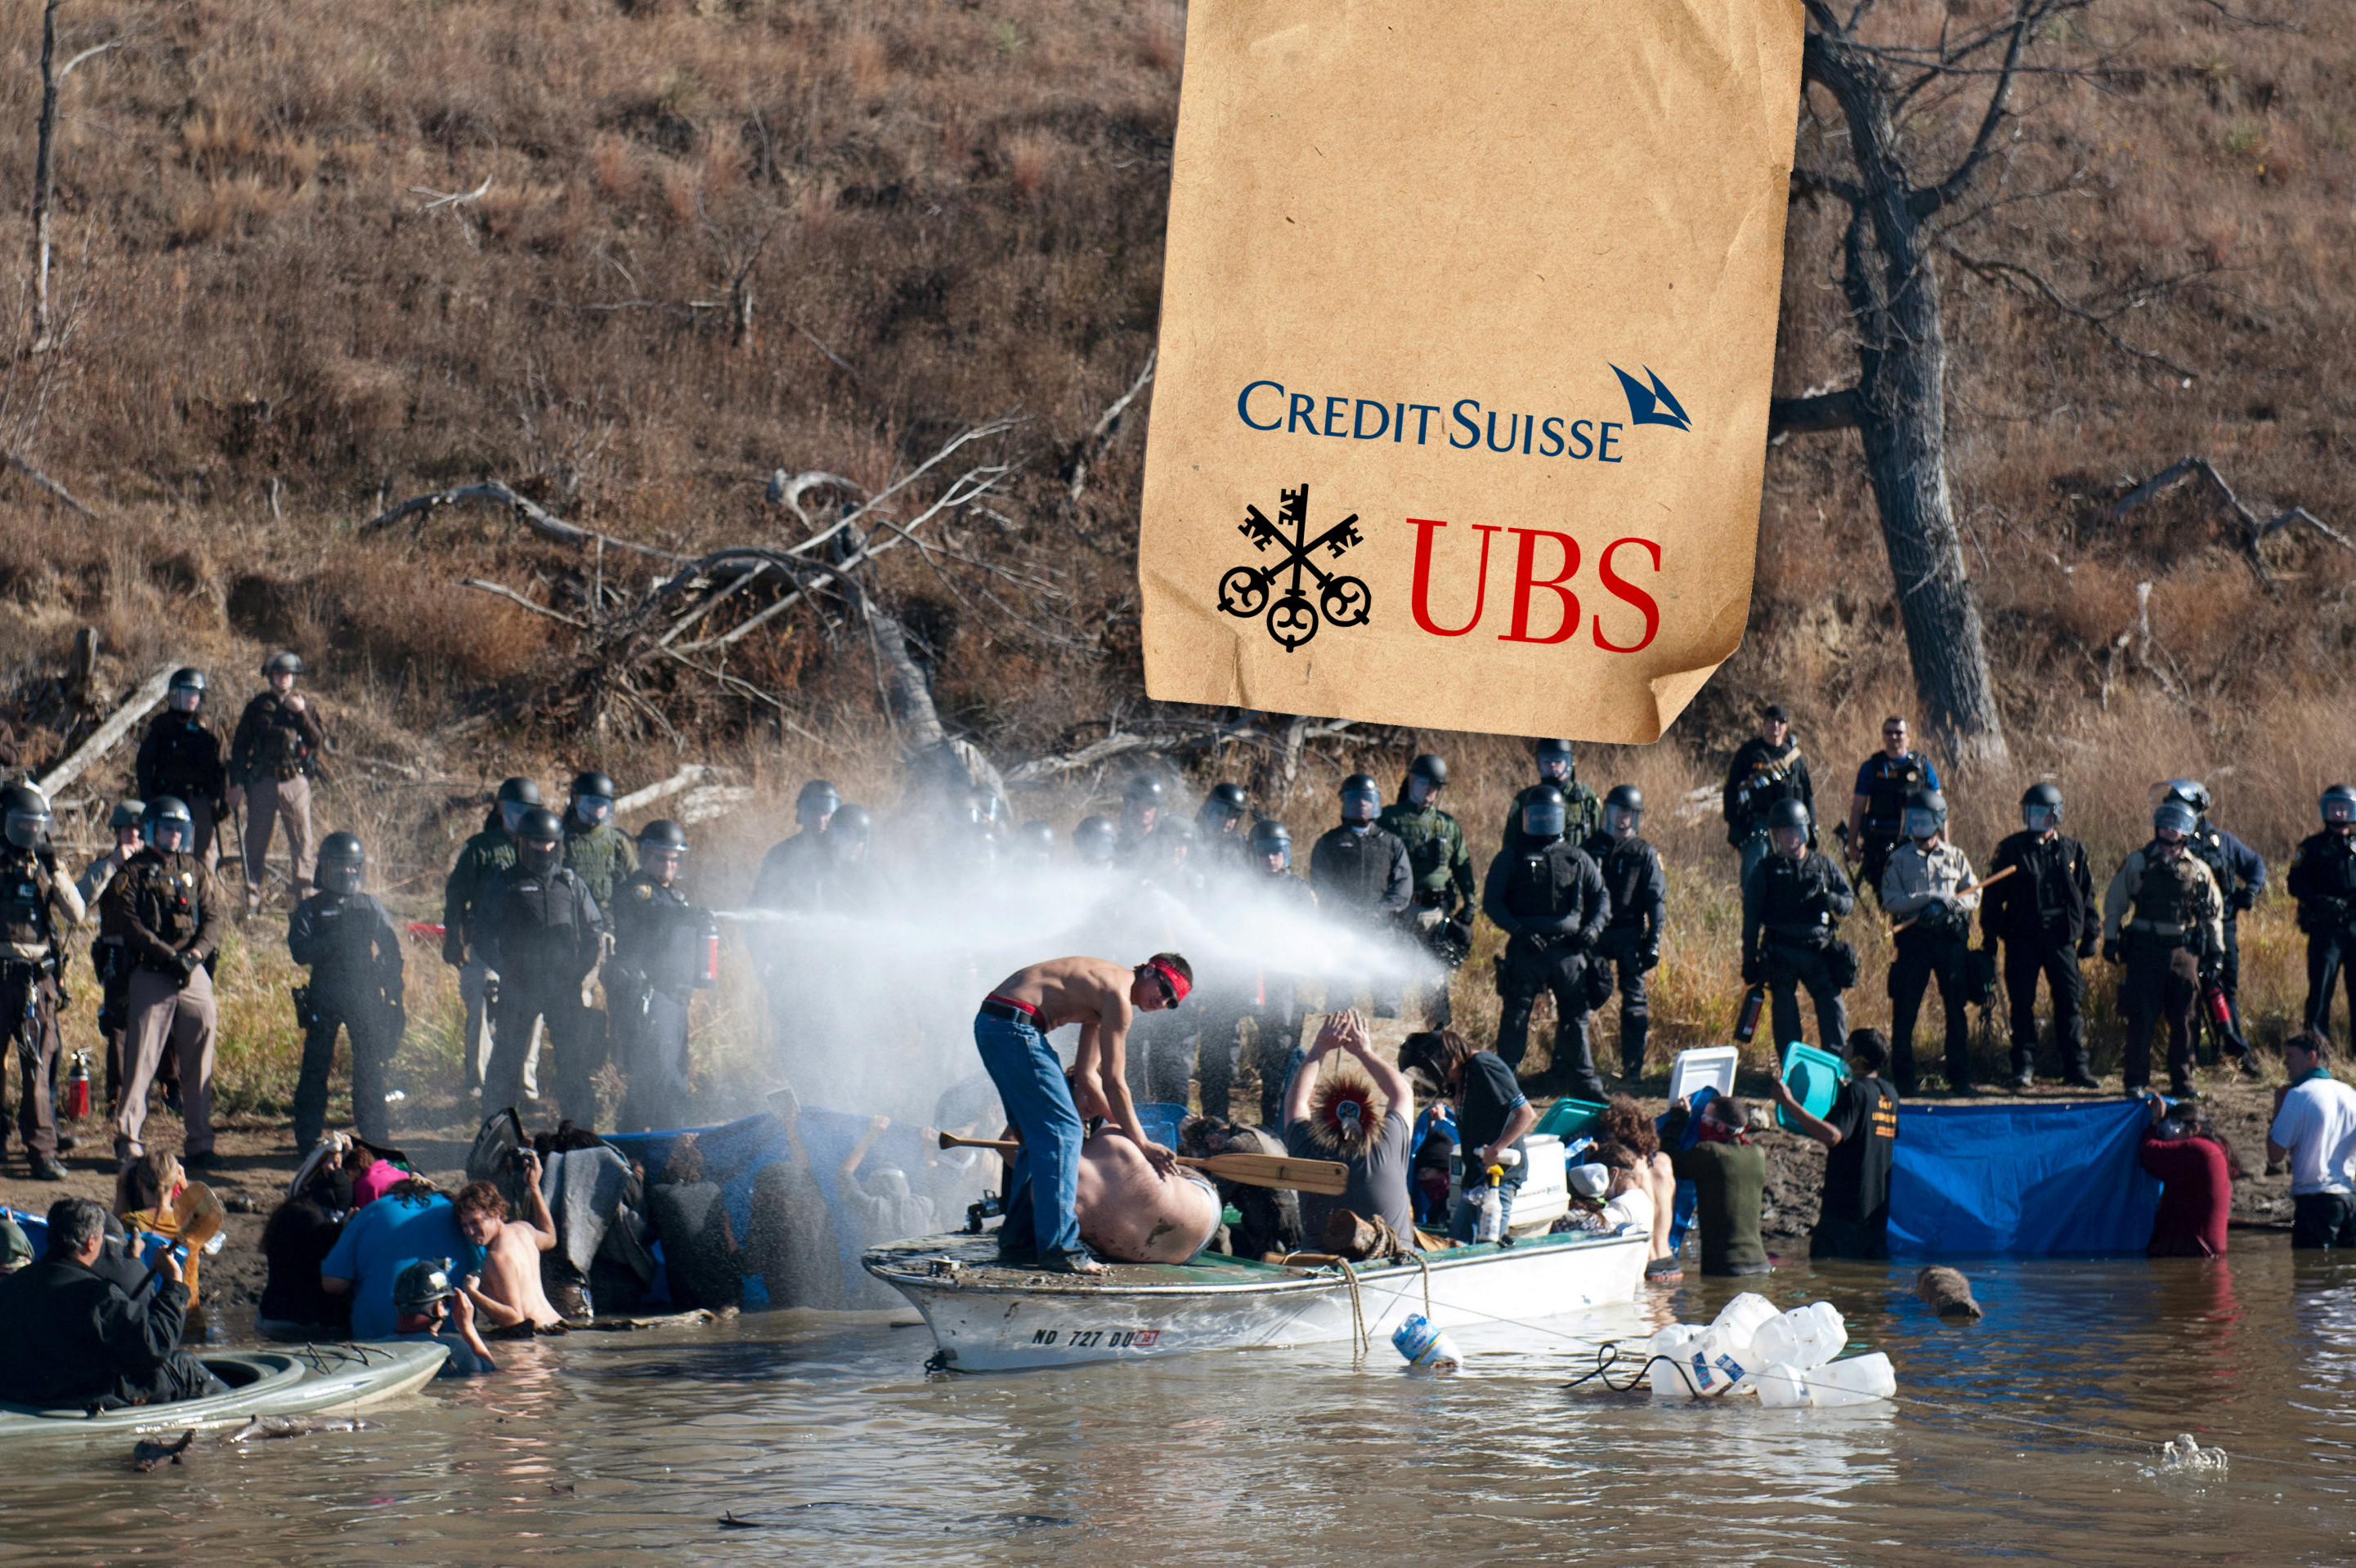 REFILE - CLARIFYING LOCATION Police use pepper spray against people standing in the water of a river during a protest against